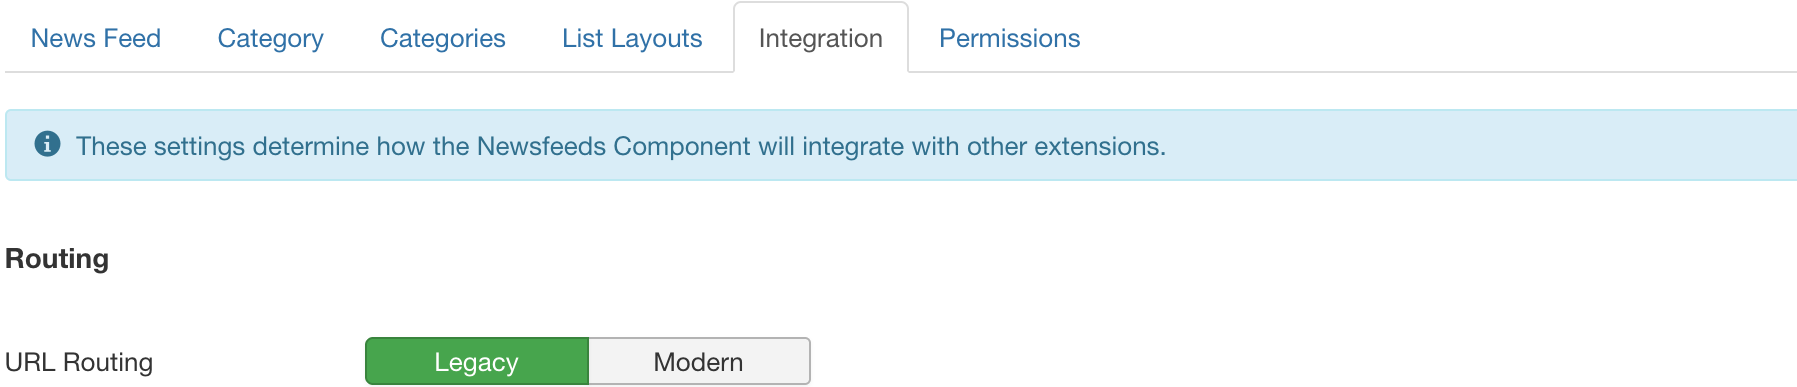 Help30-Component-Newsfeed-Manager-Options-integration-options-subscreen-en.png